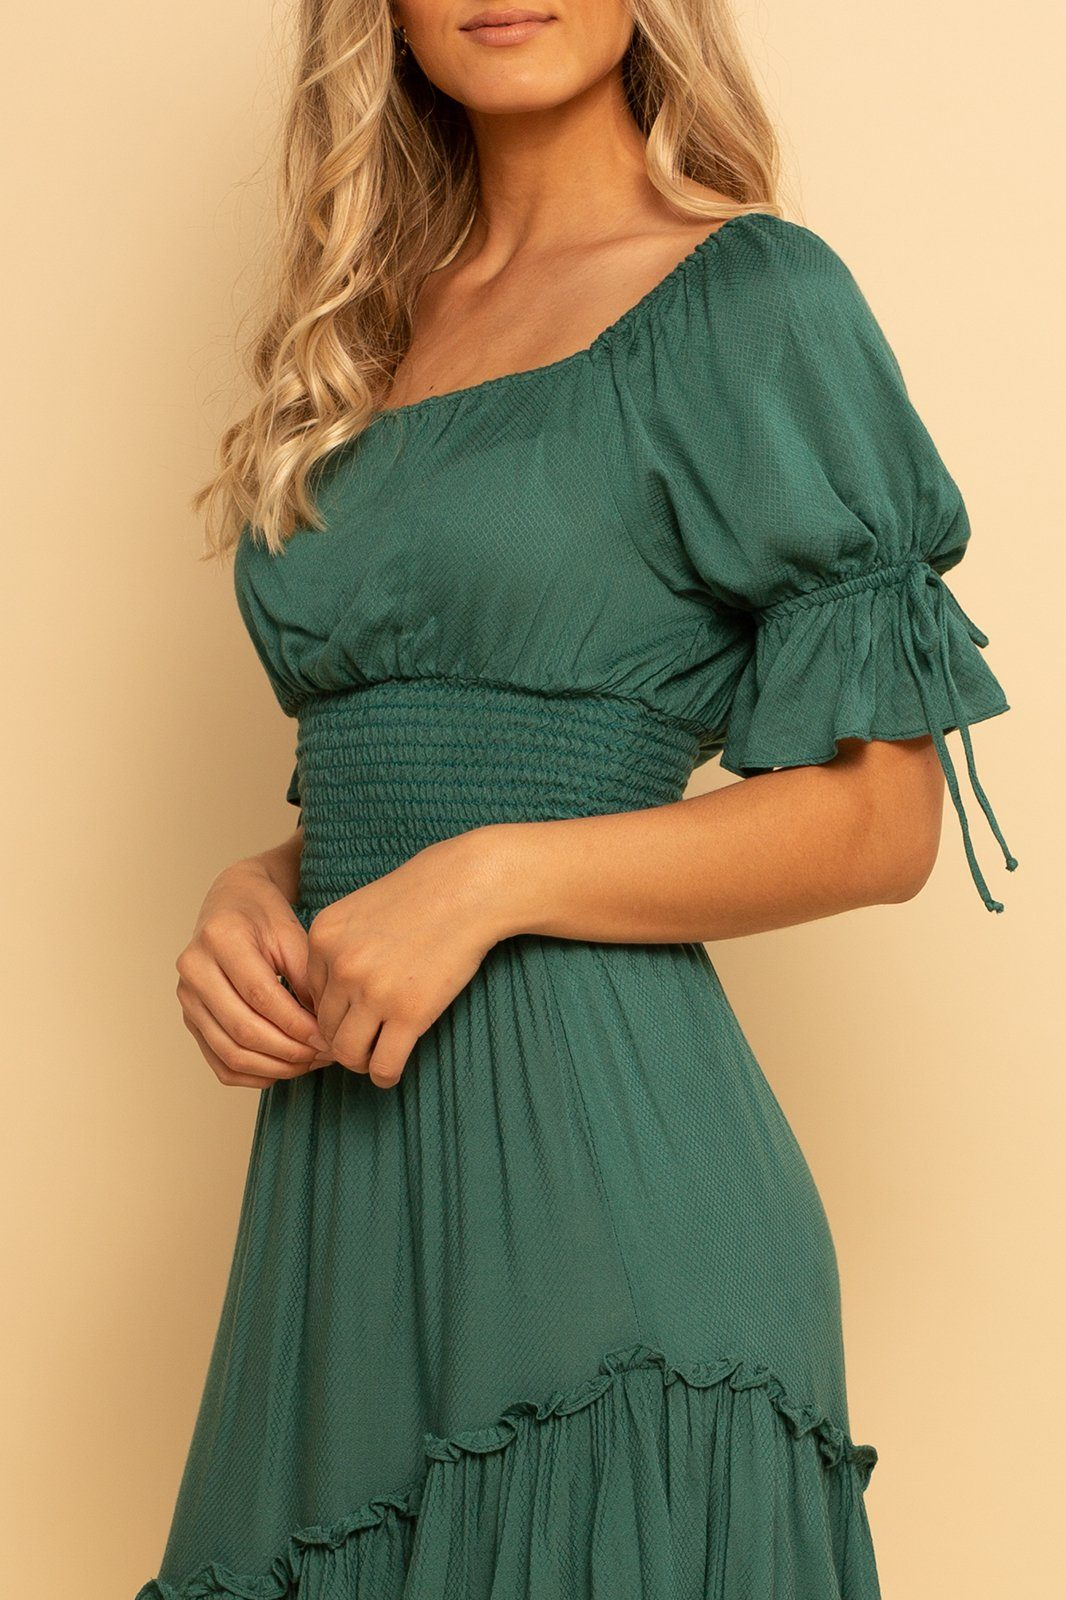 Barcelona Smocked Top - Teal - Shore